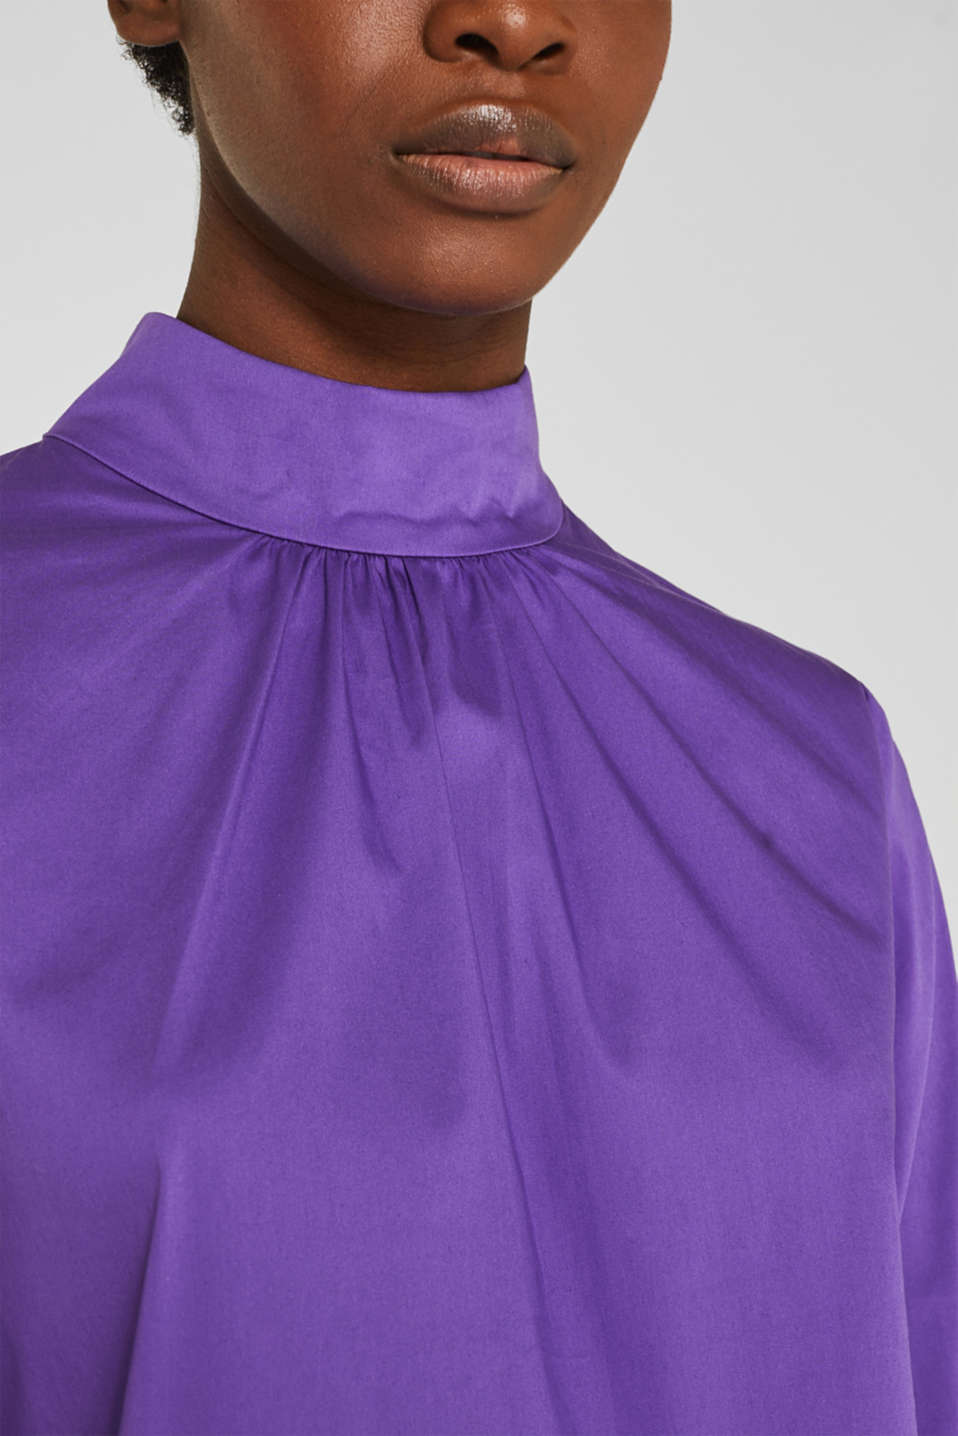 Stretch blouse with a stand-up collar, PURPLE, detail image number 2